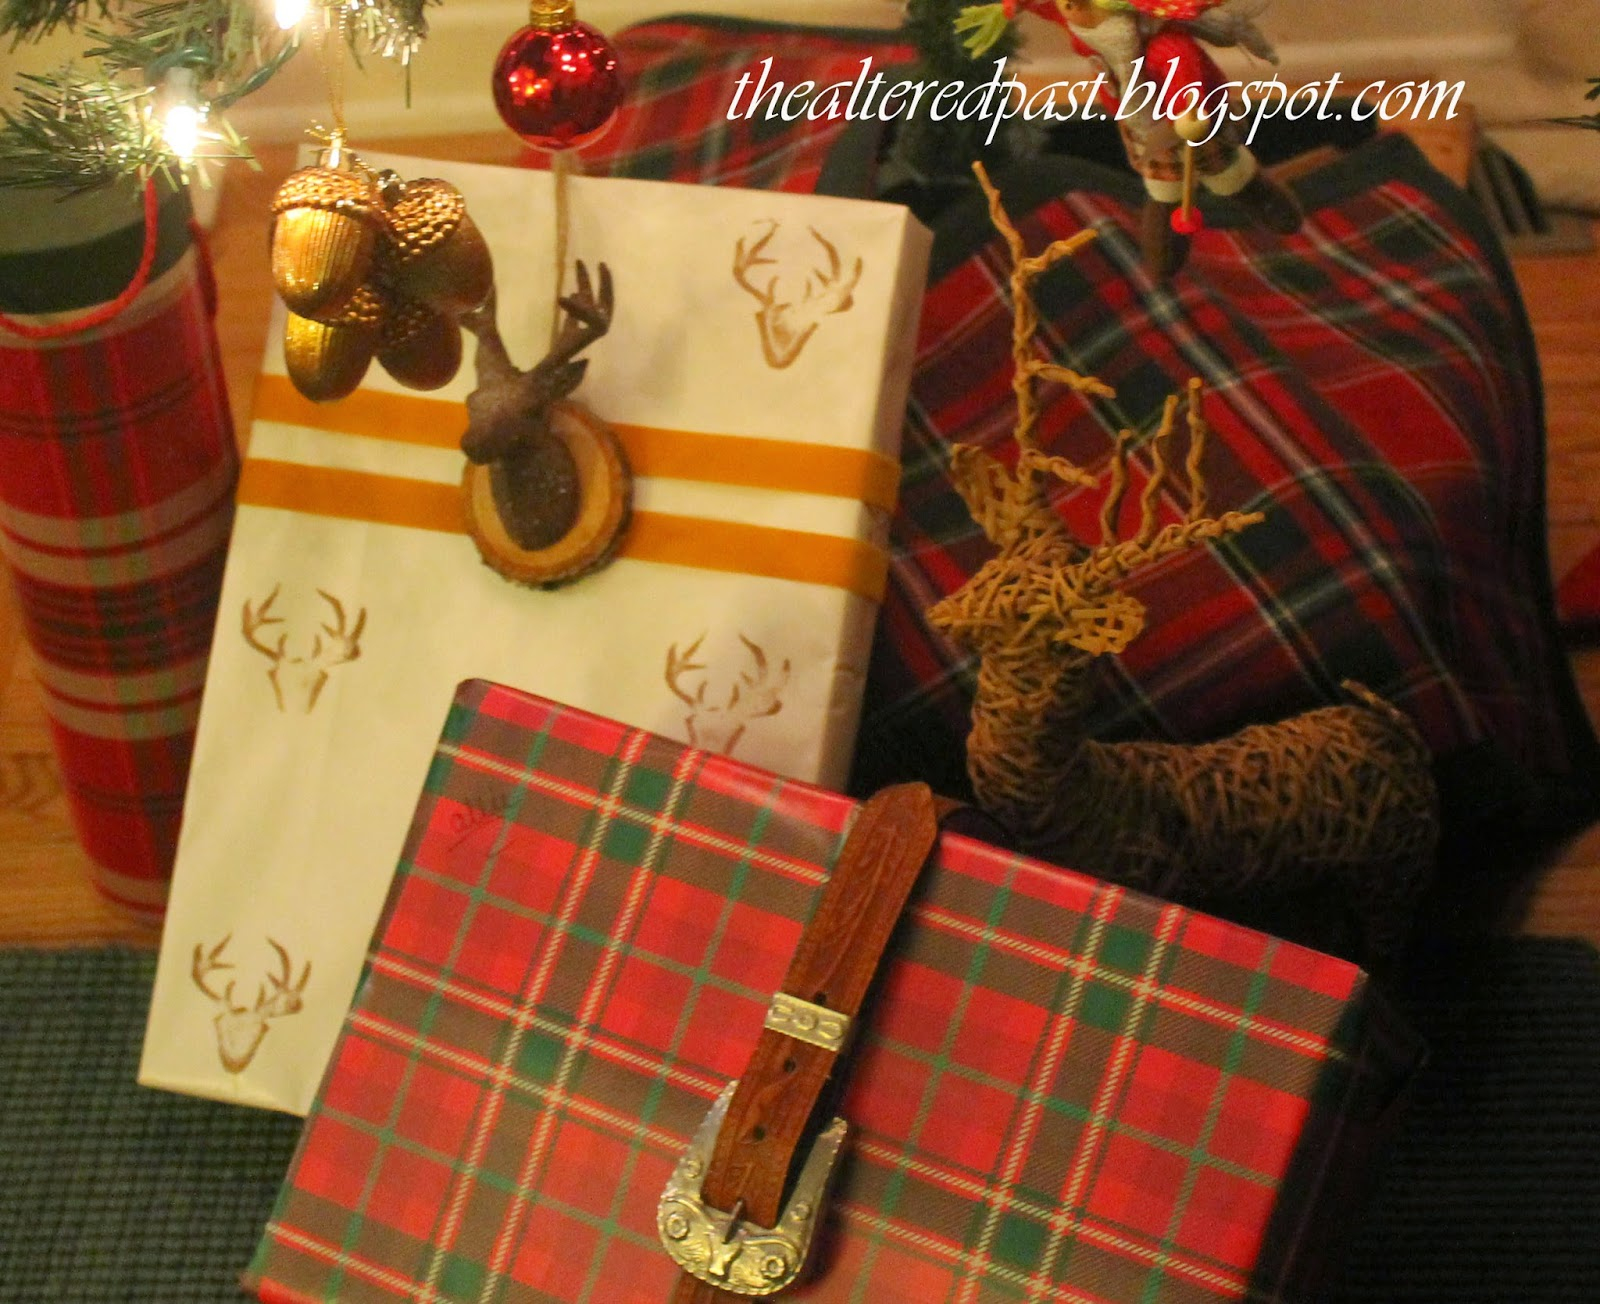 beautiful hunt themed gift wrapping, deer head ornament, the altered past blog